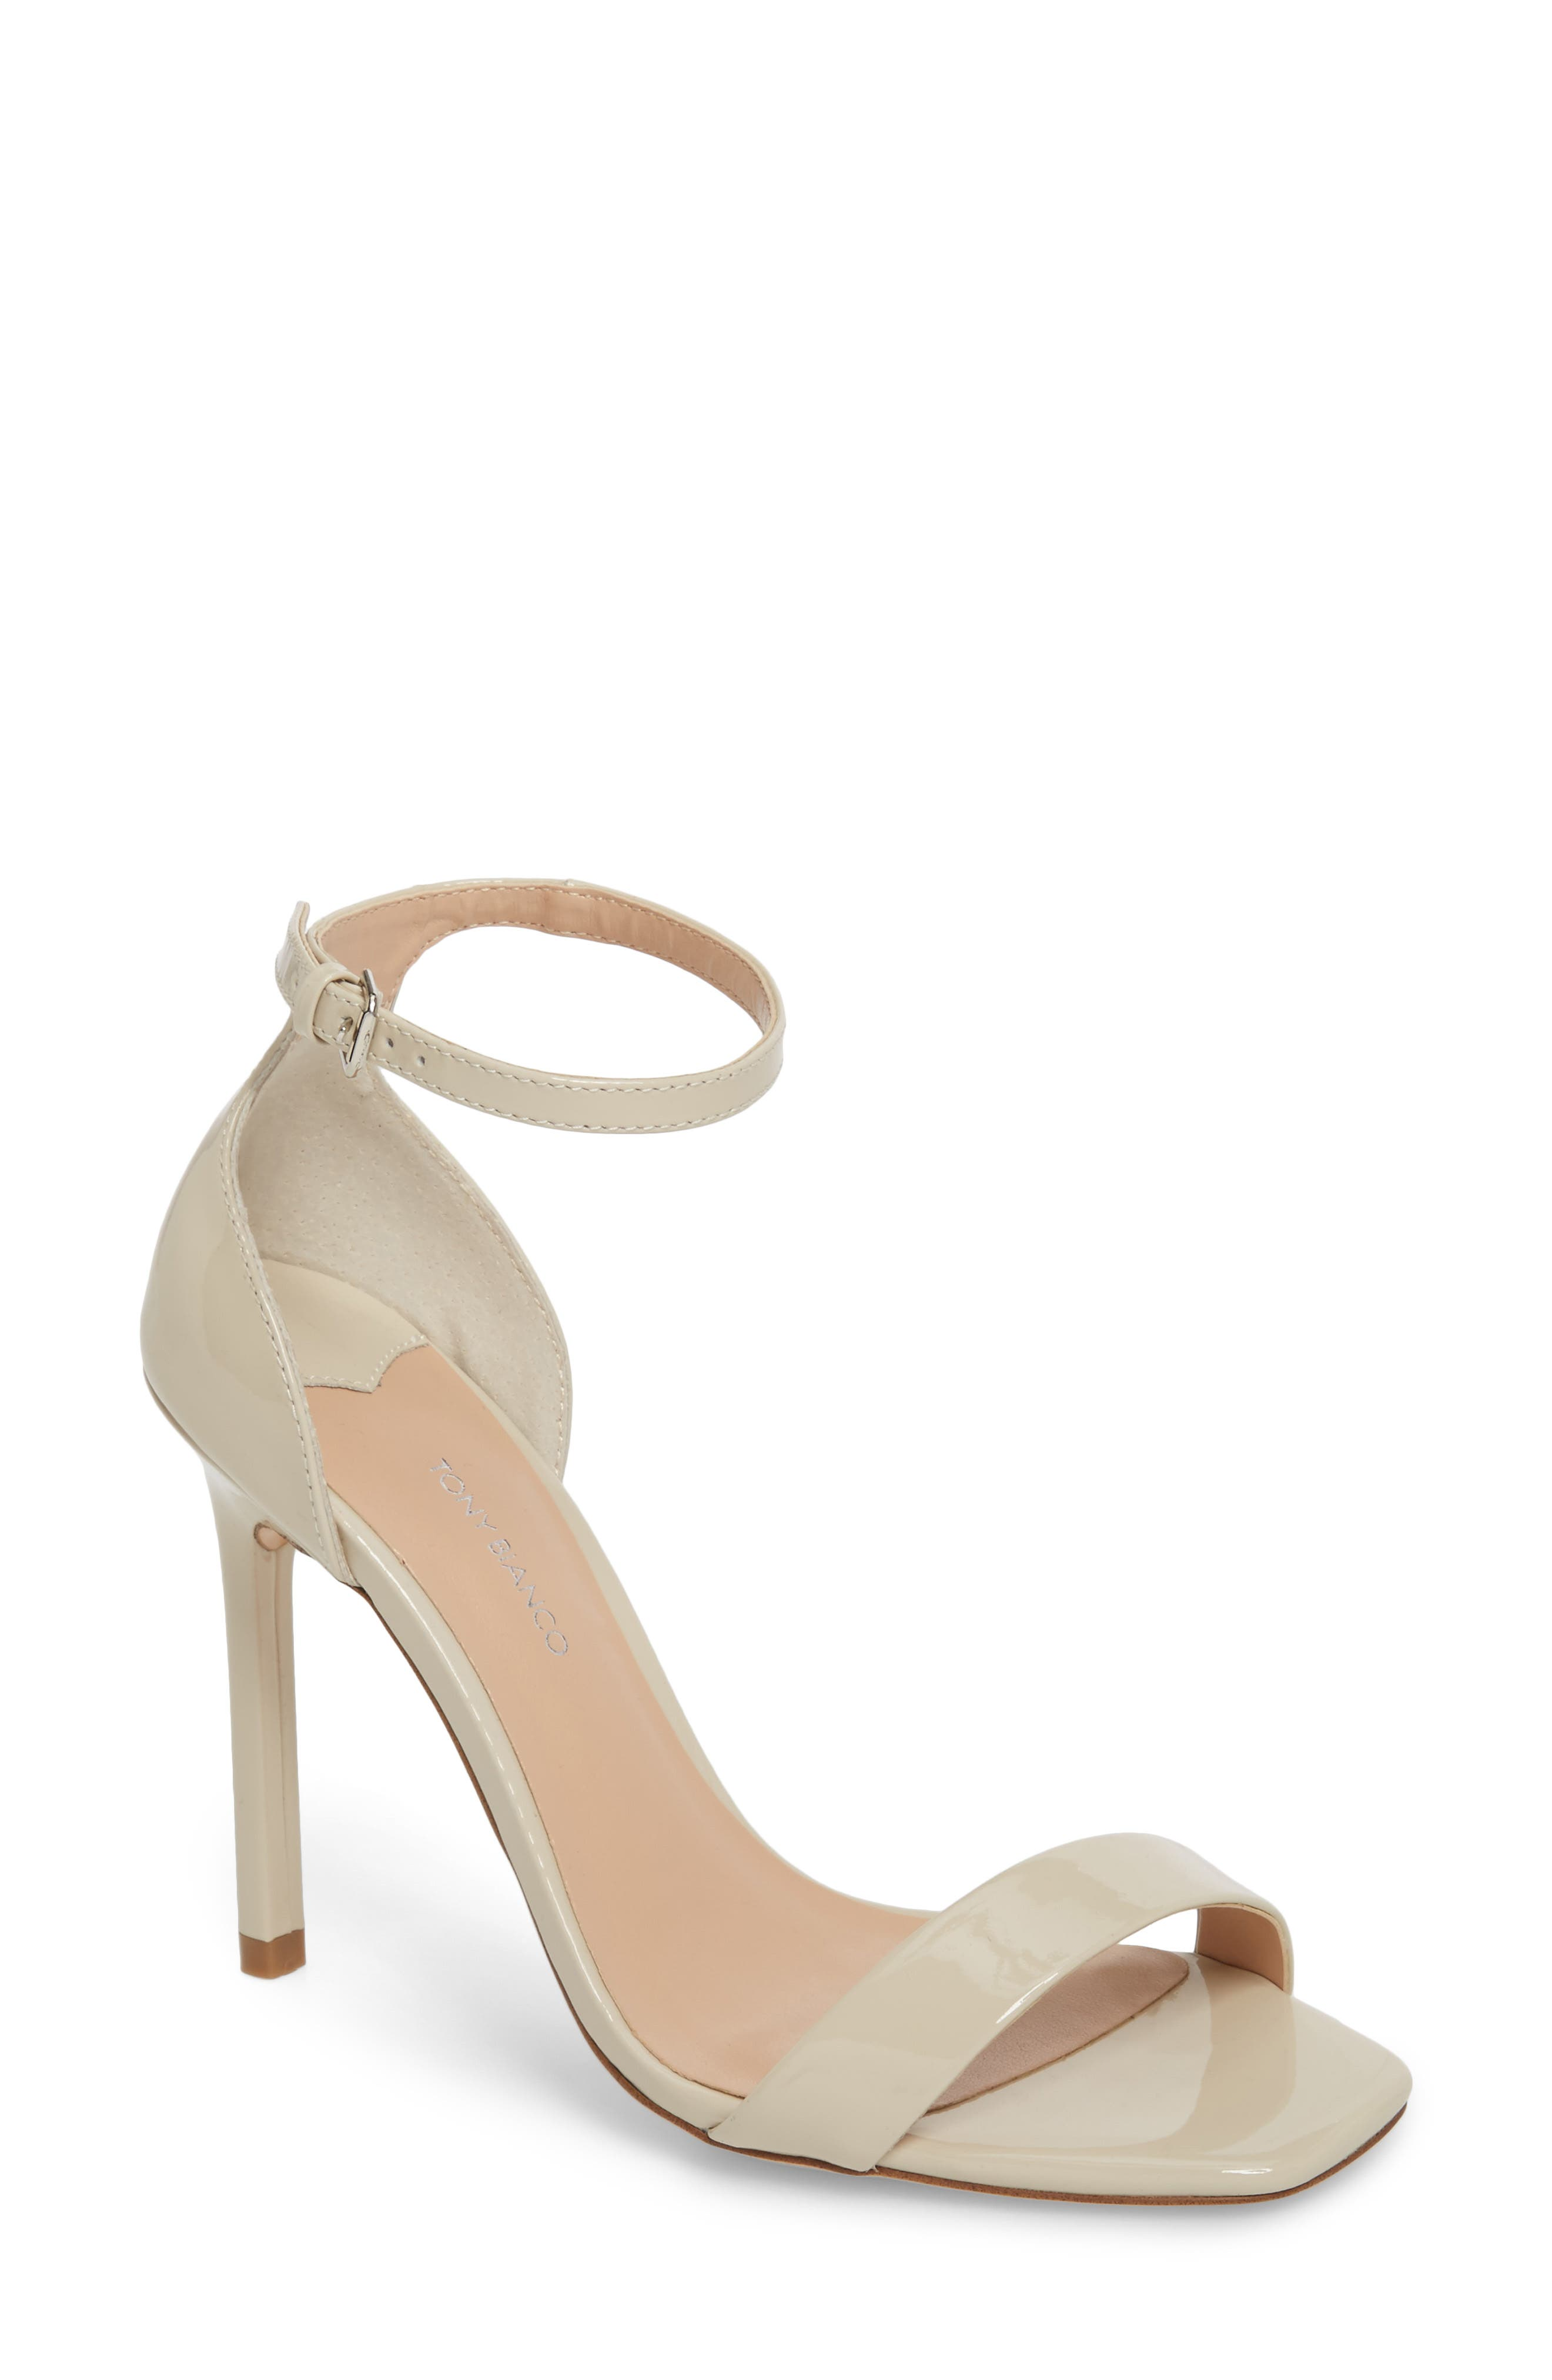 Sacha Ankle Strap Sandal,                             Main thumbnail 1, color,                             Oyster Patent Leather